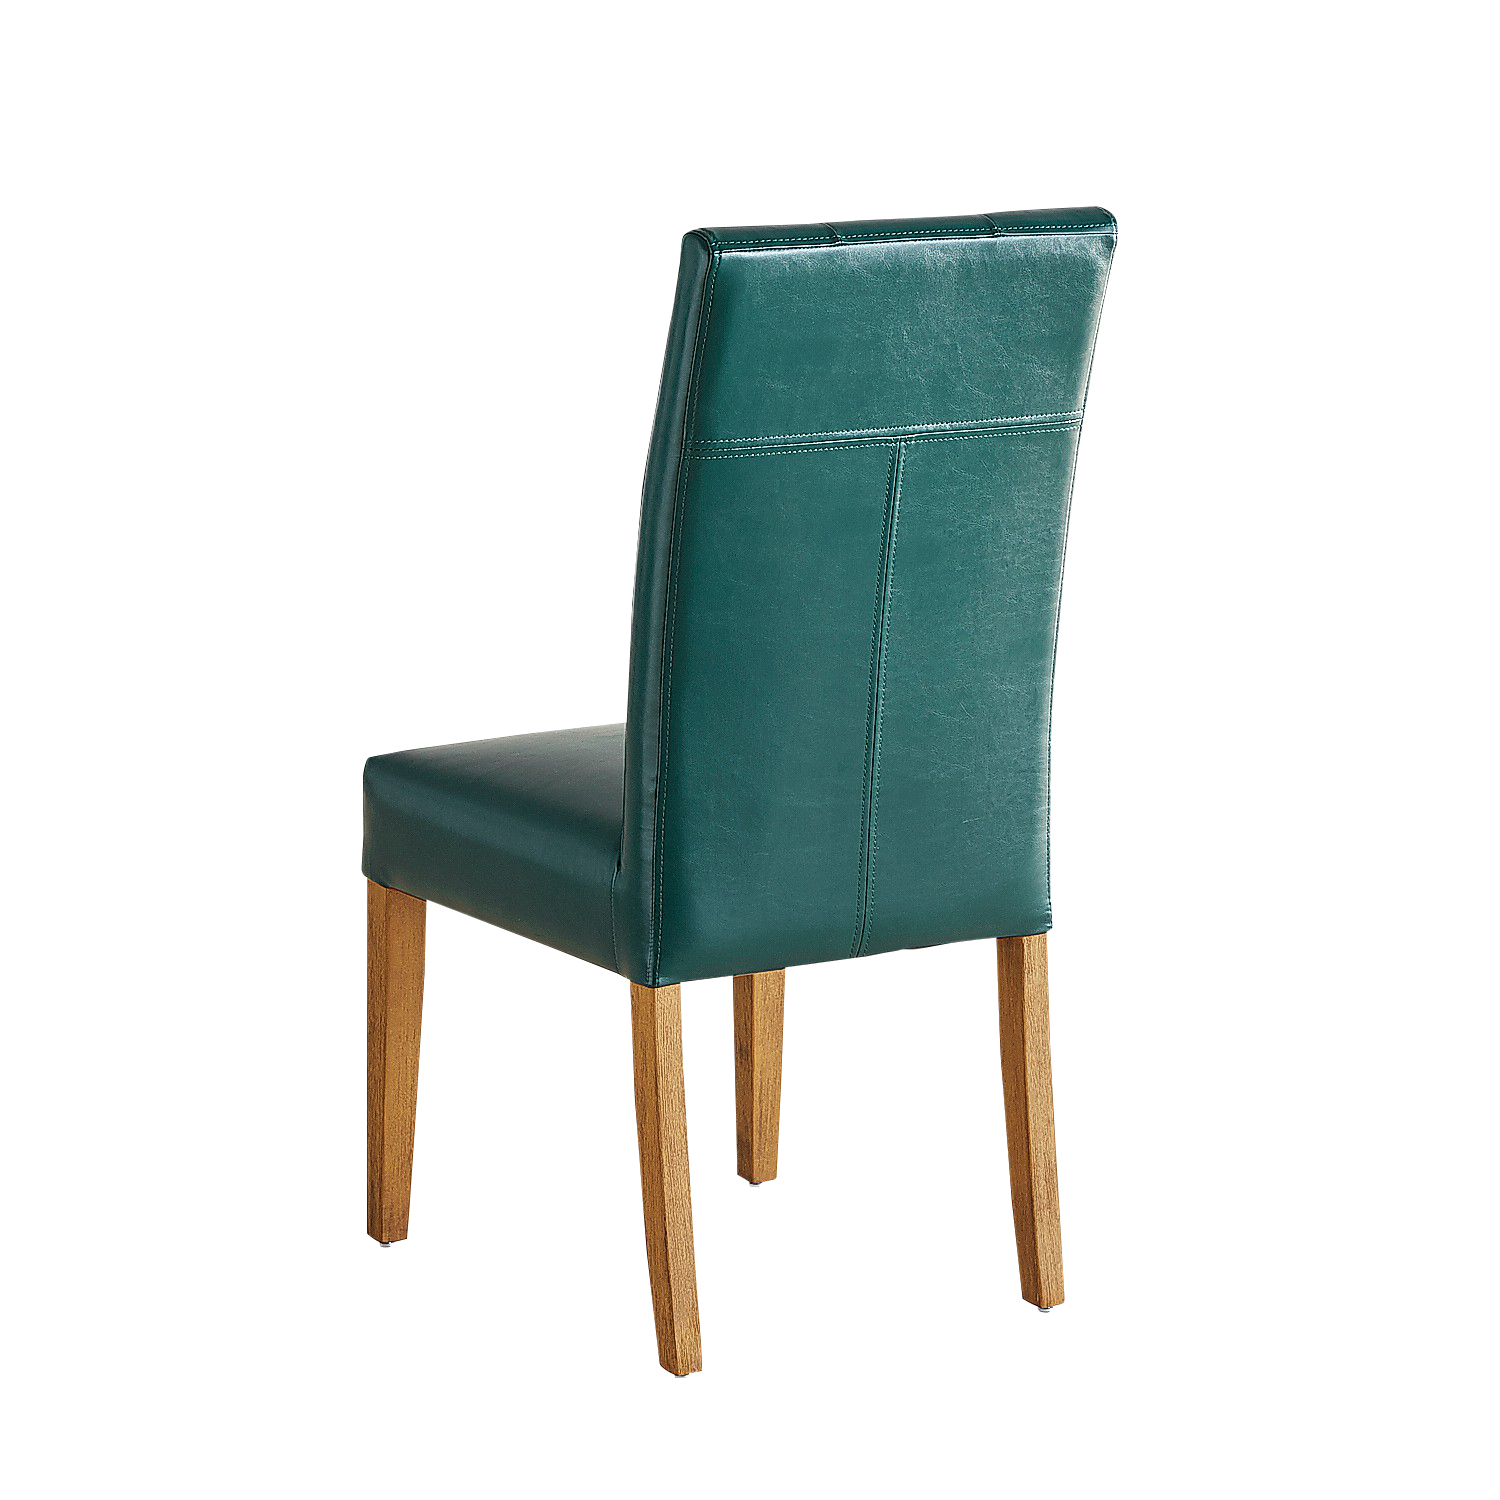 variation thumbnail of Mason Teal Dining Chair with Java Legs